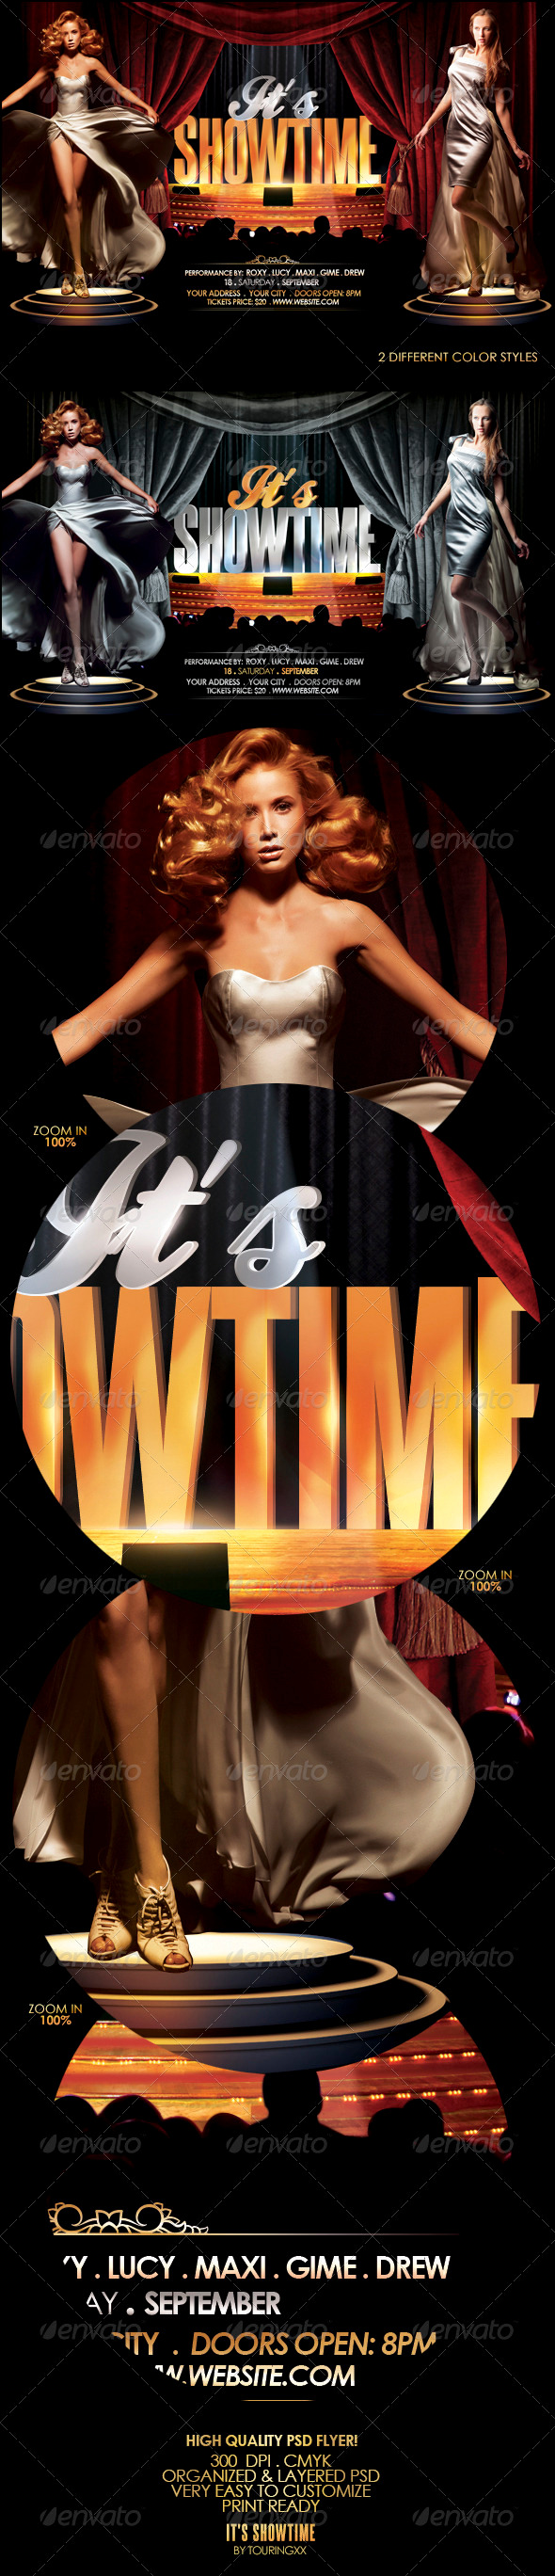 It's Showtime Flyer Template - Events Flyers